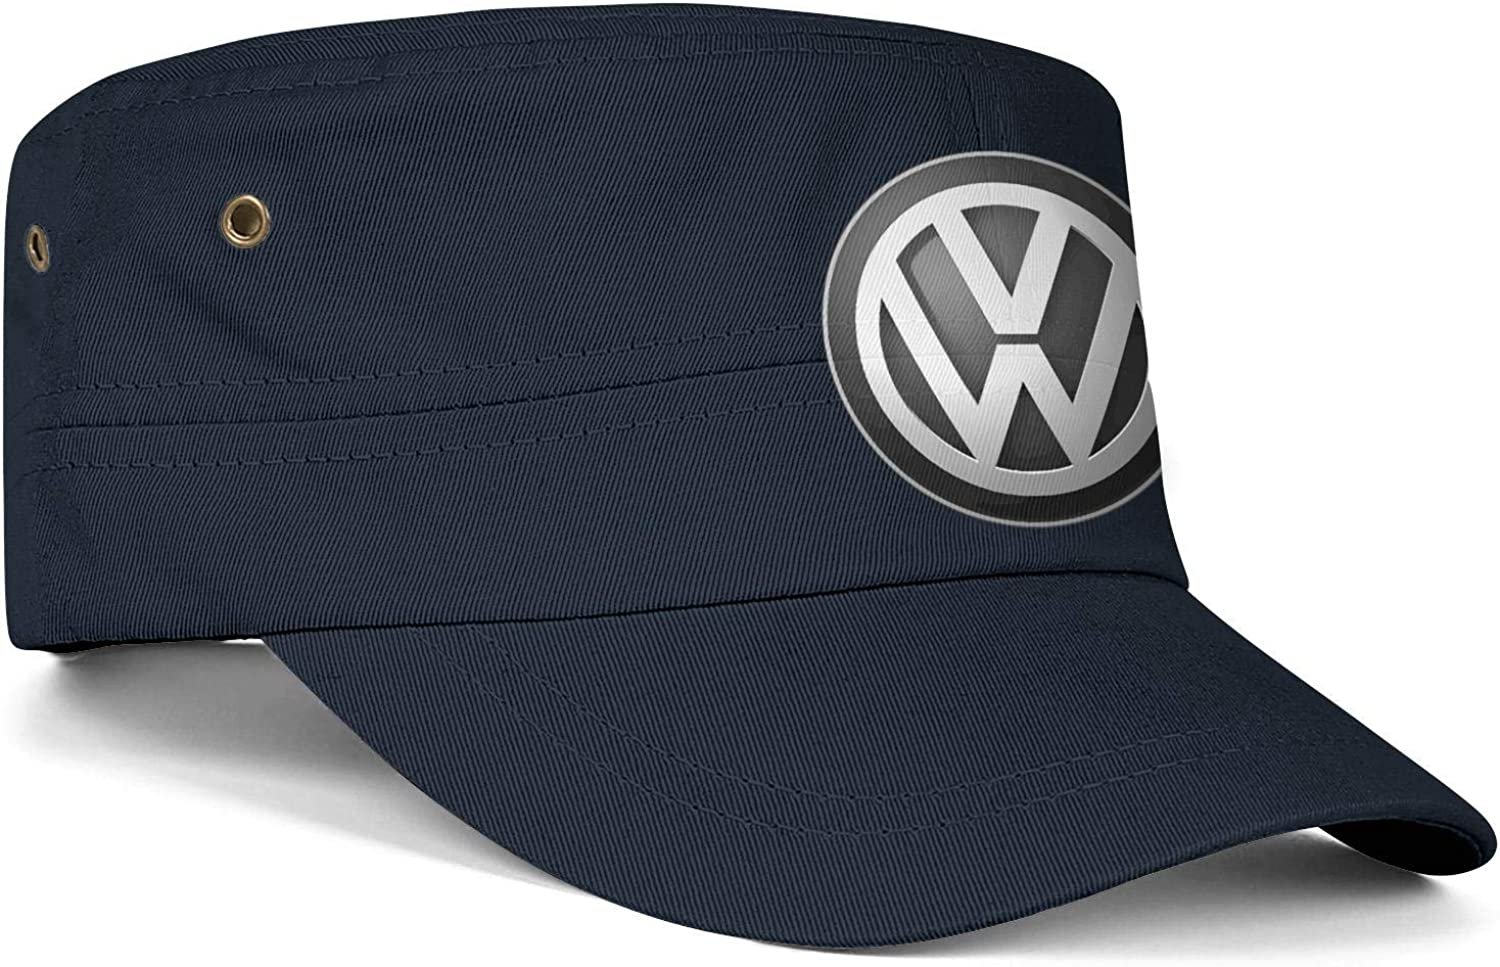 QFPMZJUIE Volkswagen-Logo Mens Woens Hats Snapback Military Cap Dad Hat Adult Caps